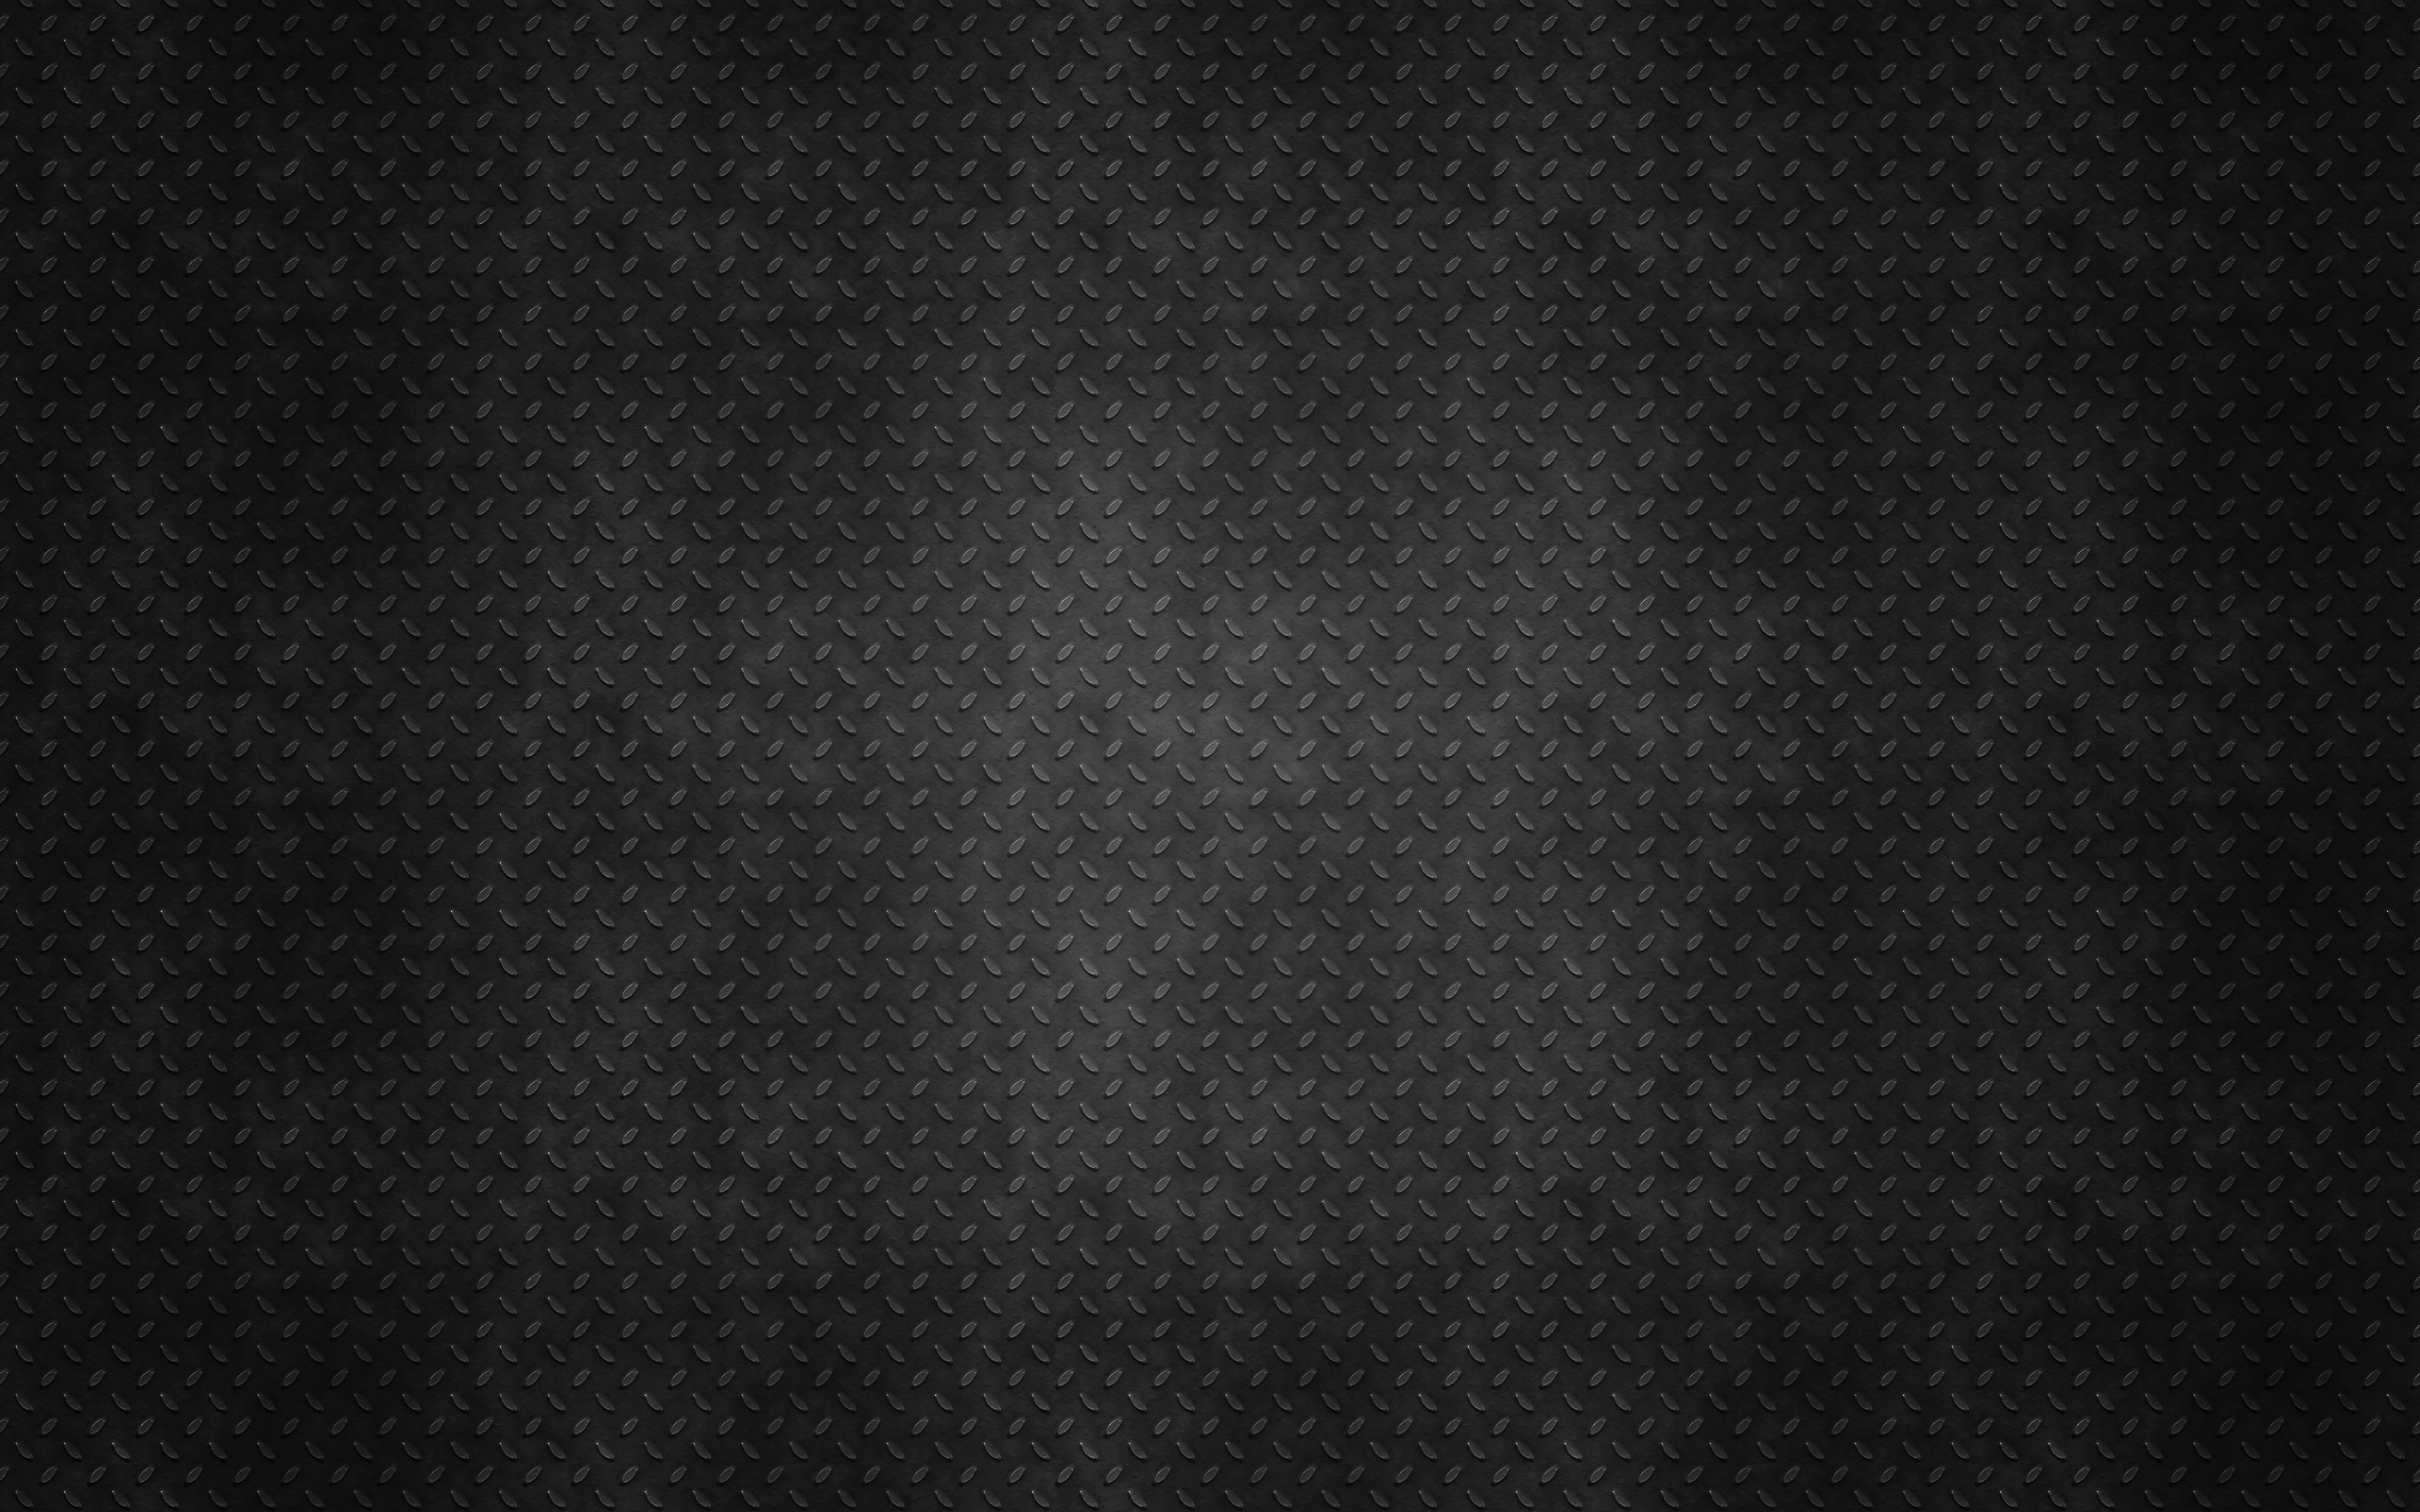 textured backgrounds 18615